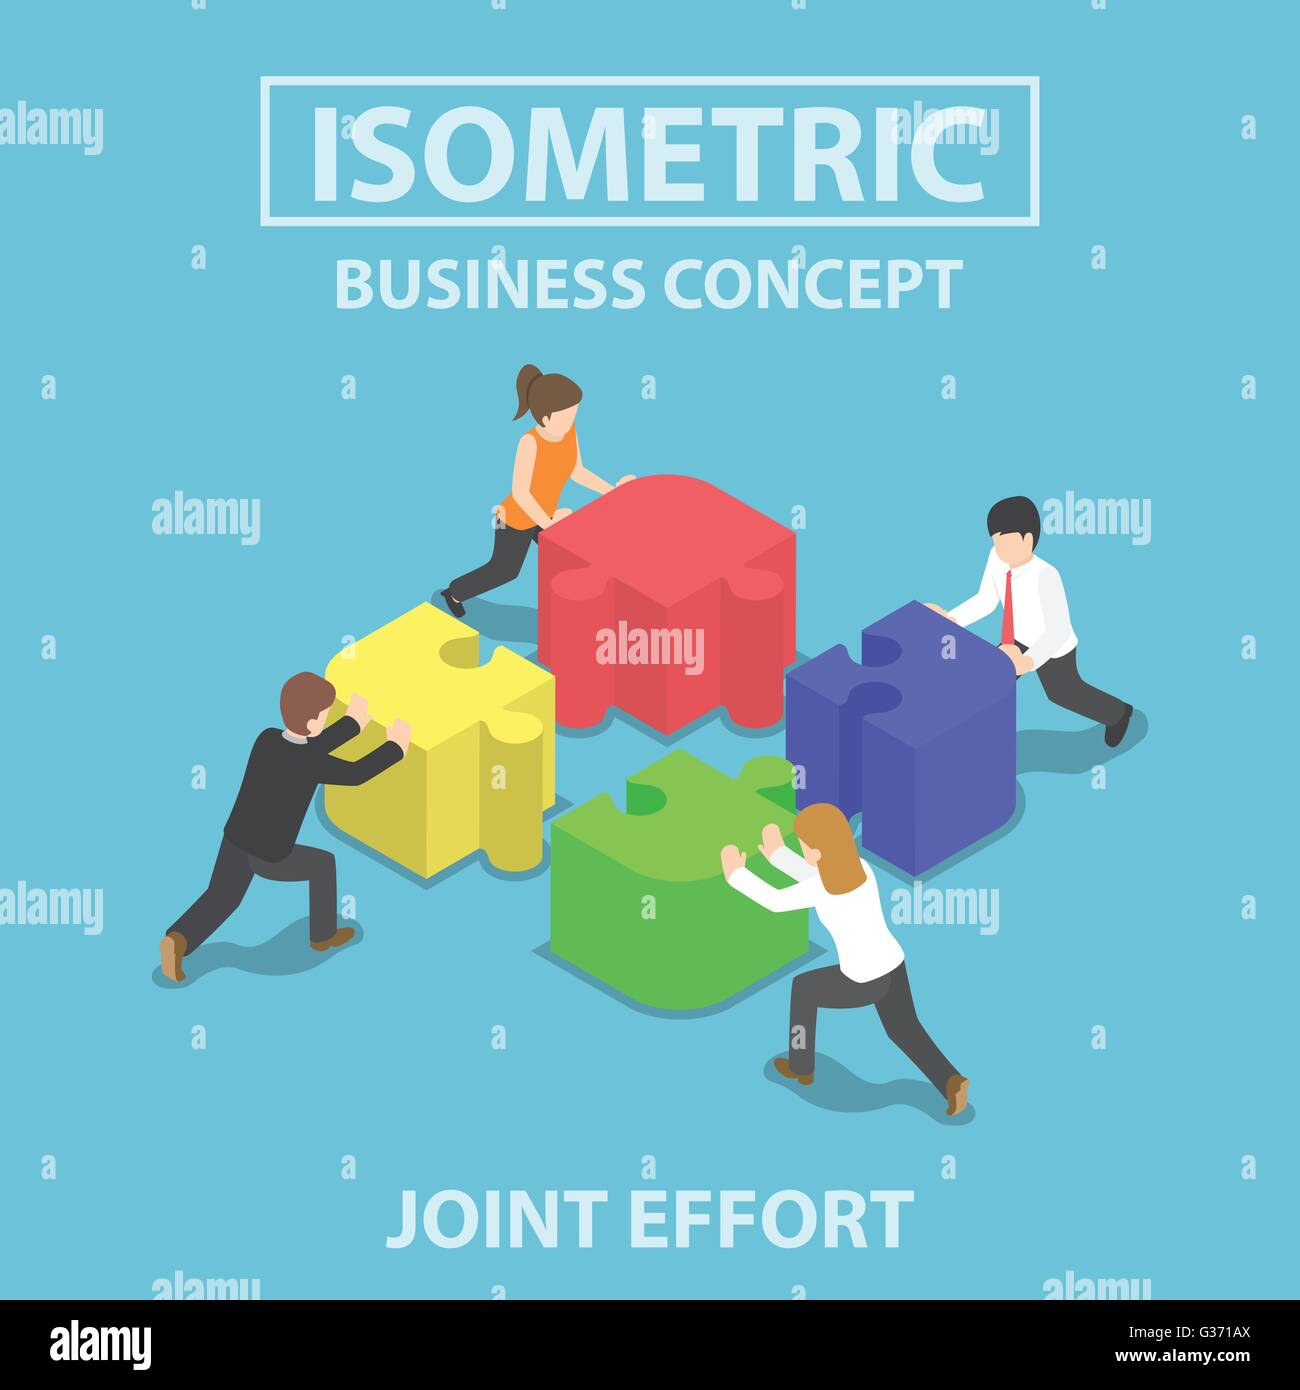 Isometric business people pushing and assembling four jigsaw puzzles, teamwork, collaboration, joint effort concept - Stock Image